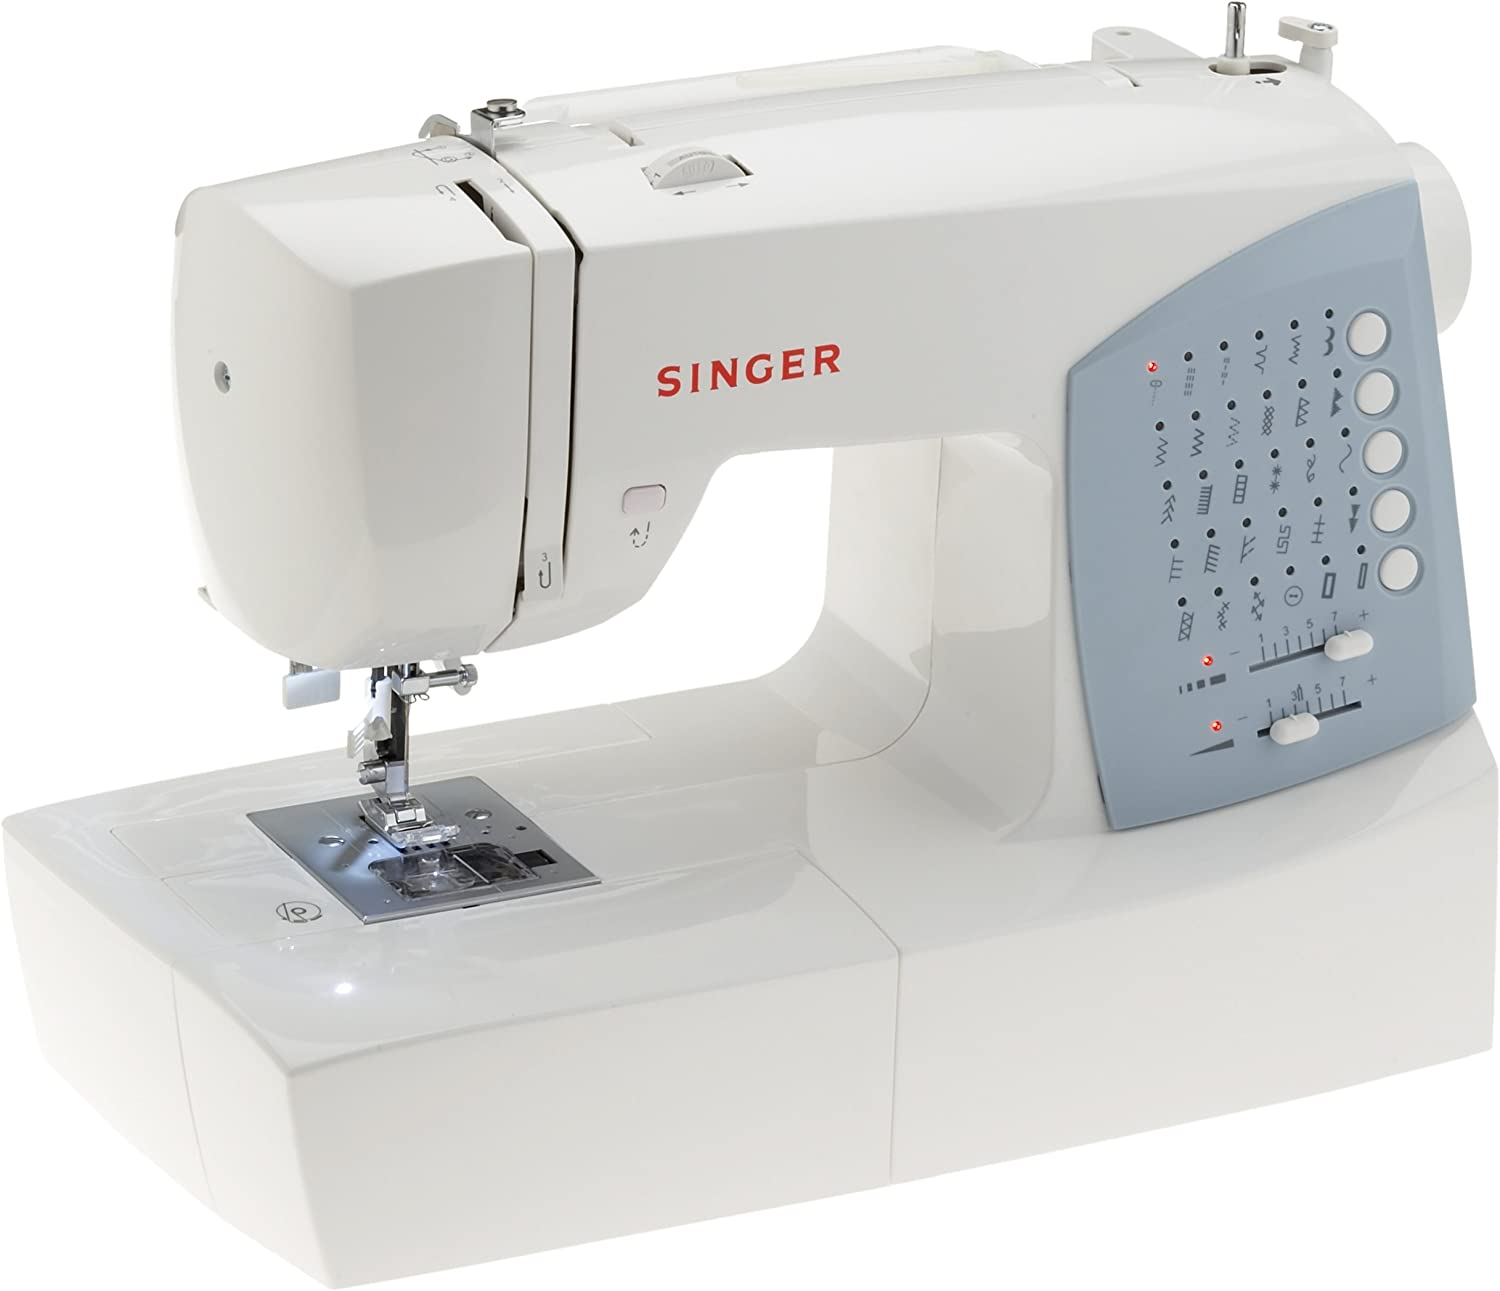 Singer 7422 - Máquina de Coser (Azul, Blanco, Costura, Variable ...